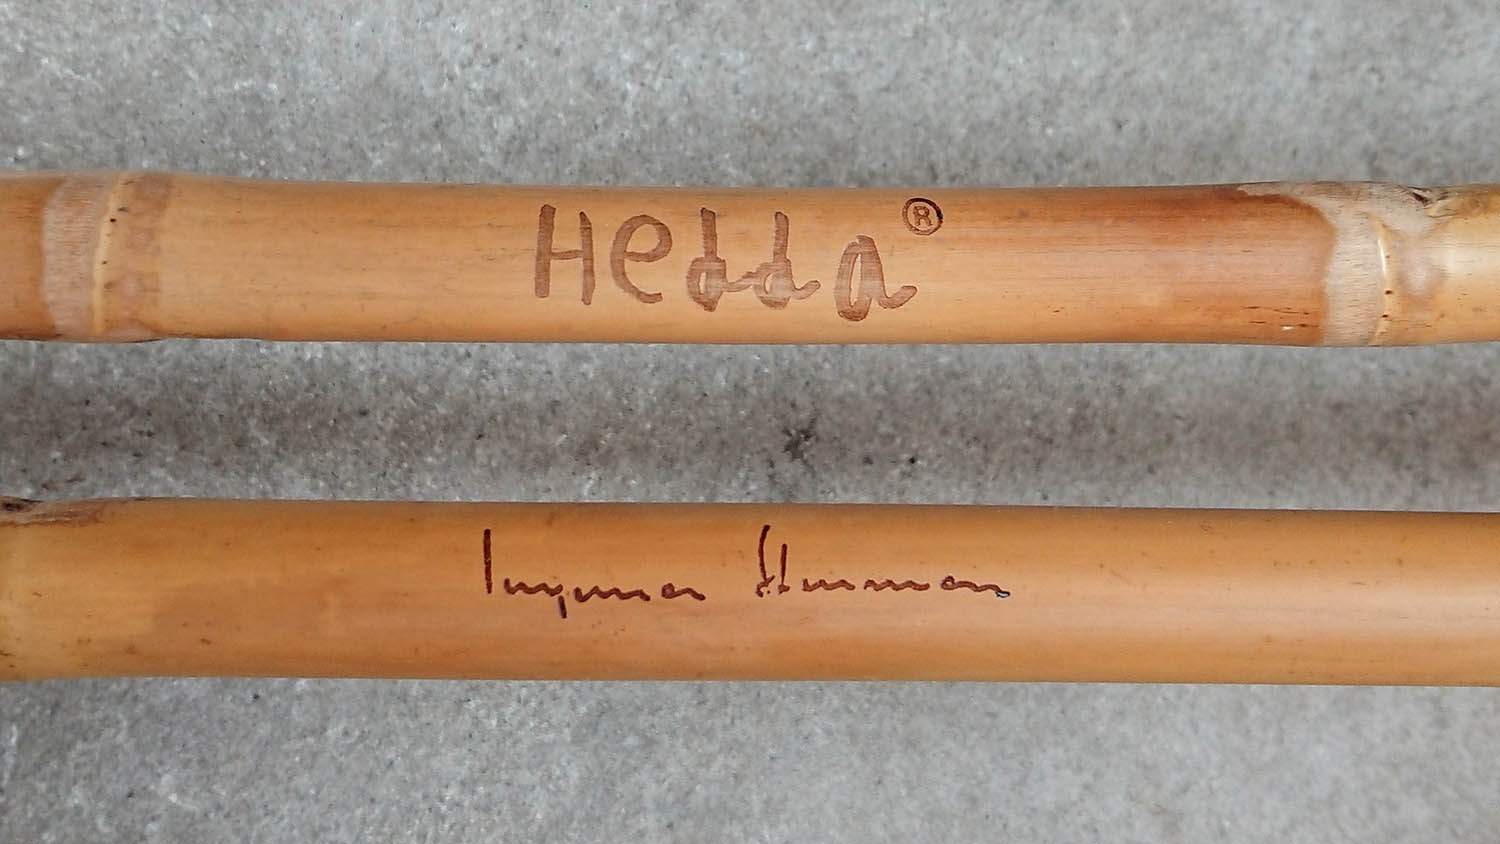 Bamboo ski poles with a laser engraved signature.